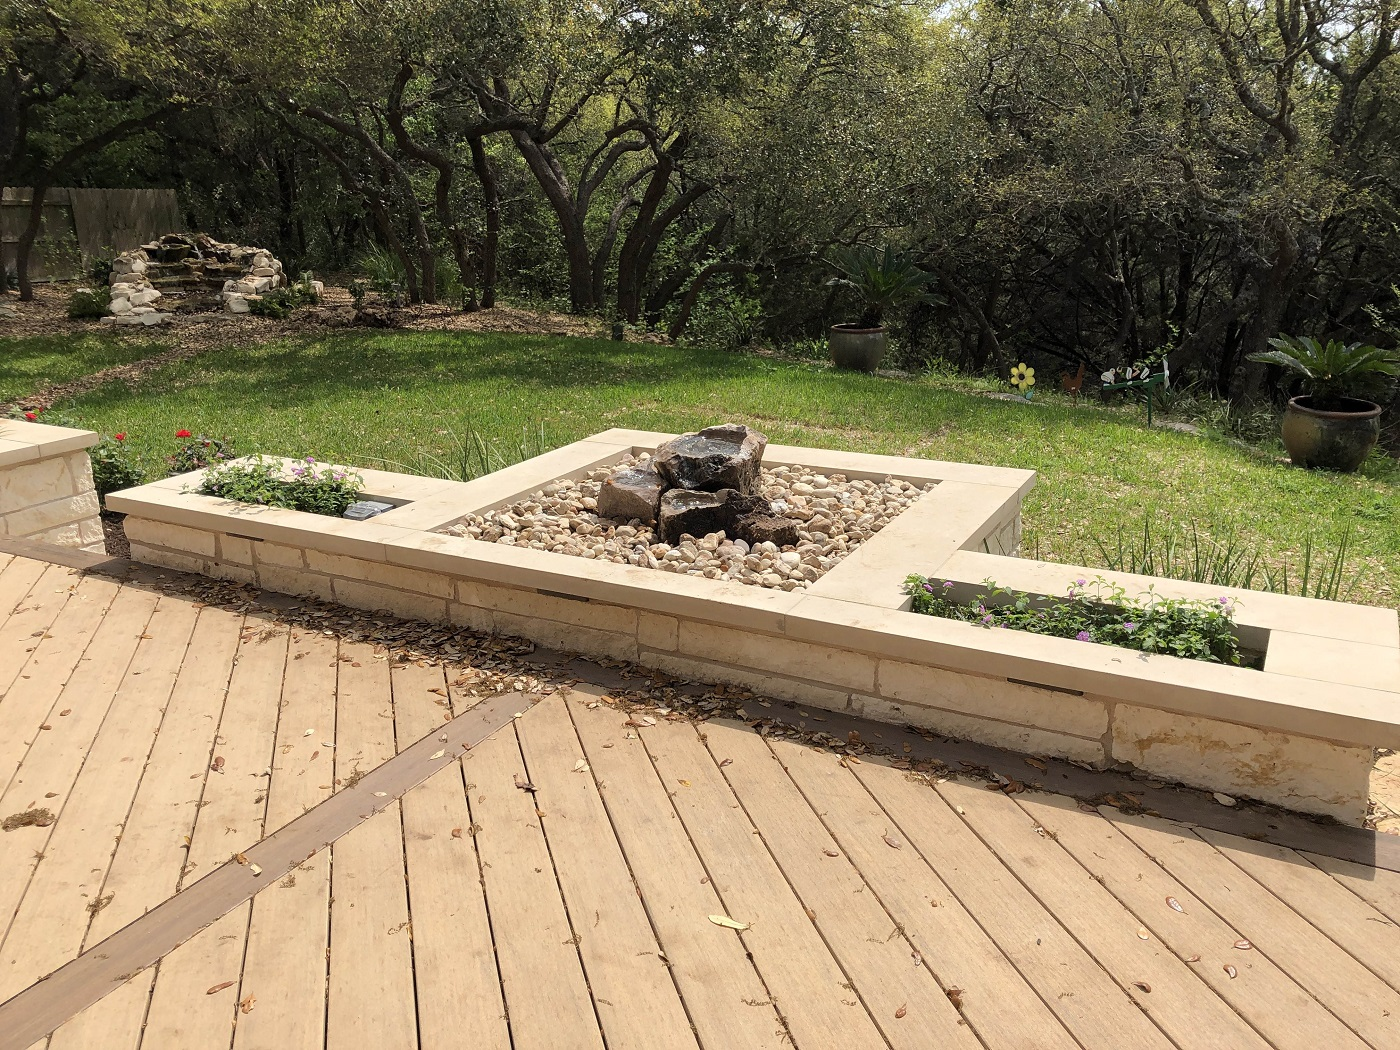 Stone-planters-with-a-custom-water-feature-surround-the-new-deck